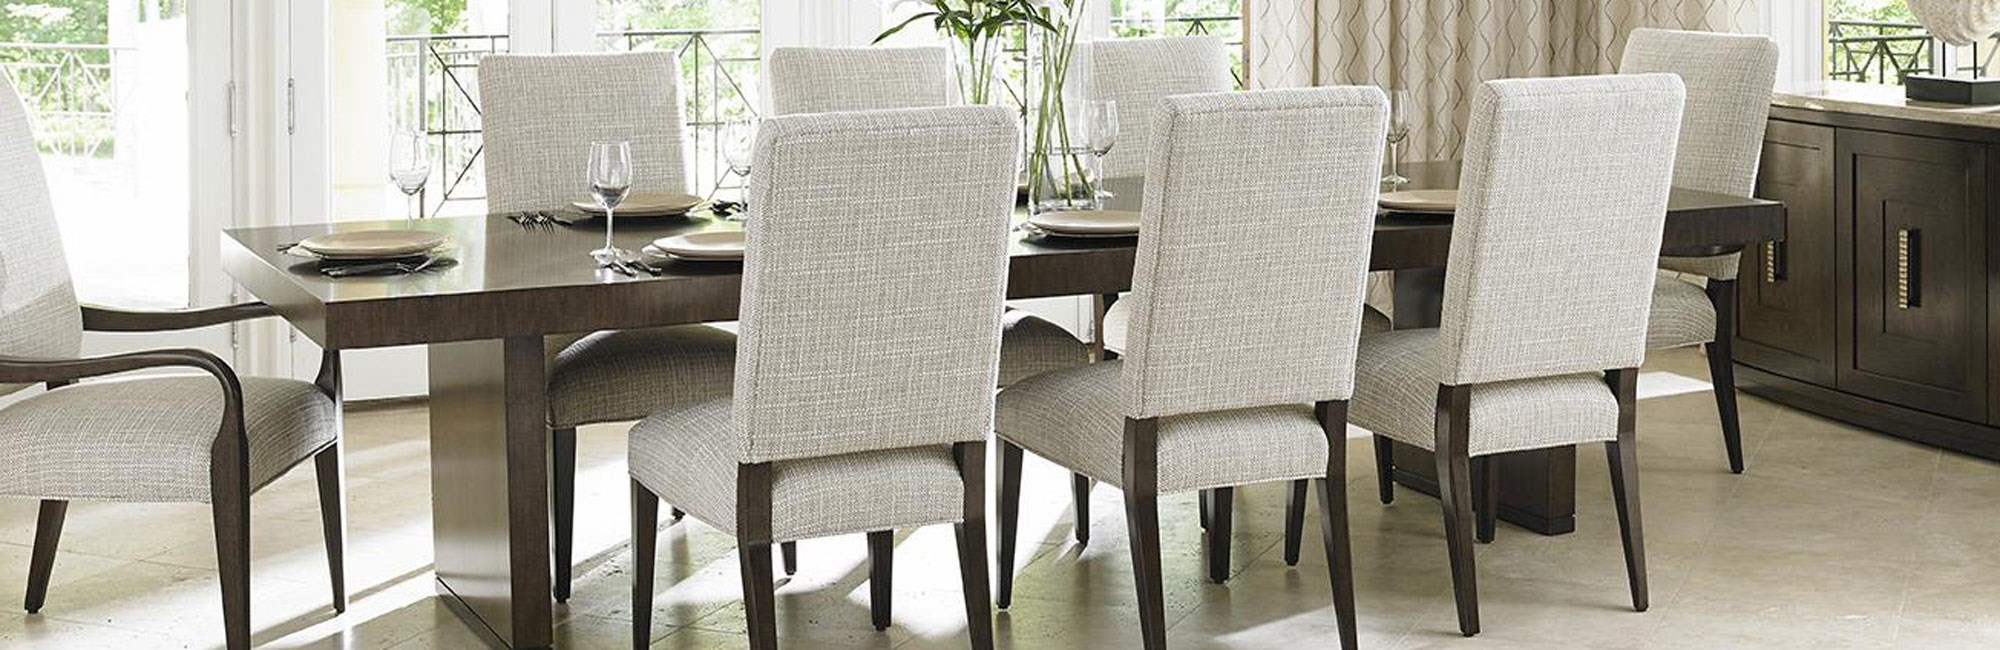 Dining Room Furniture C S Wo Sons California inside sizing 2000 X 650